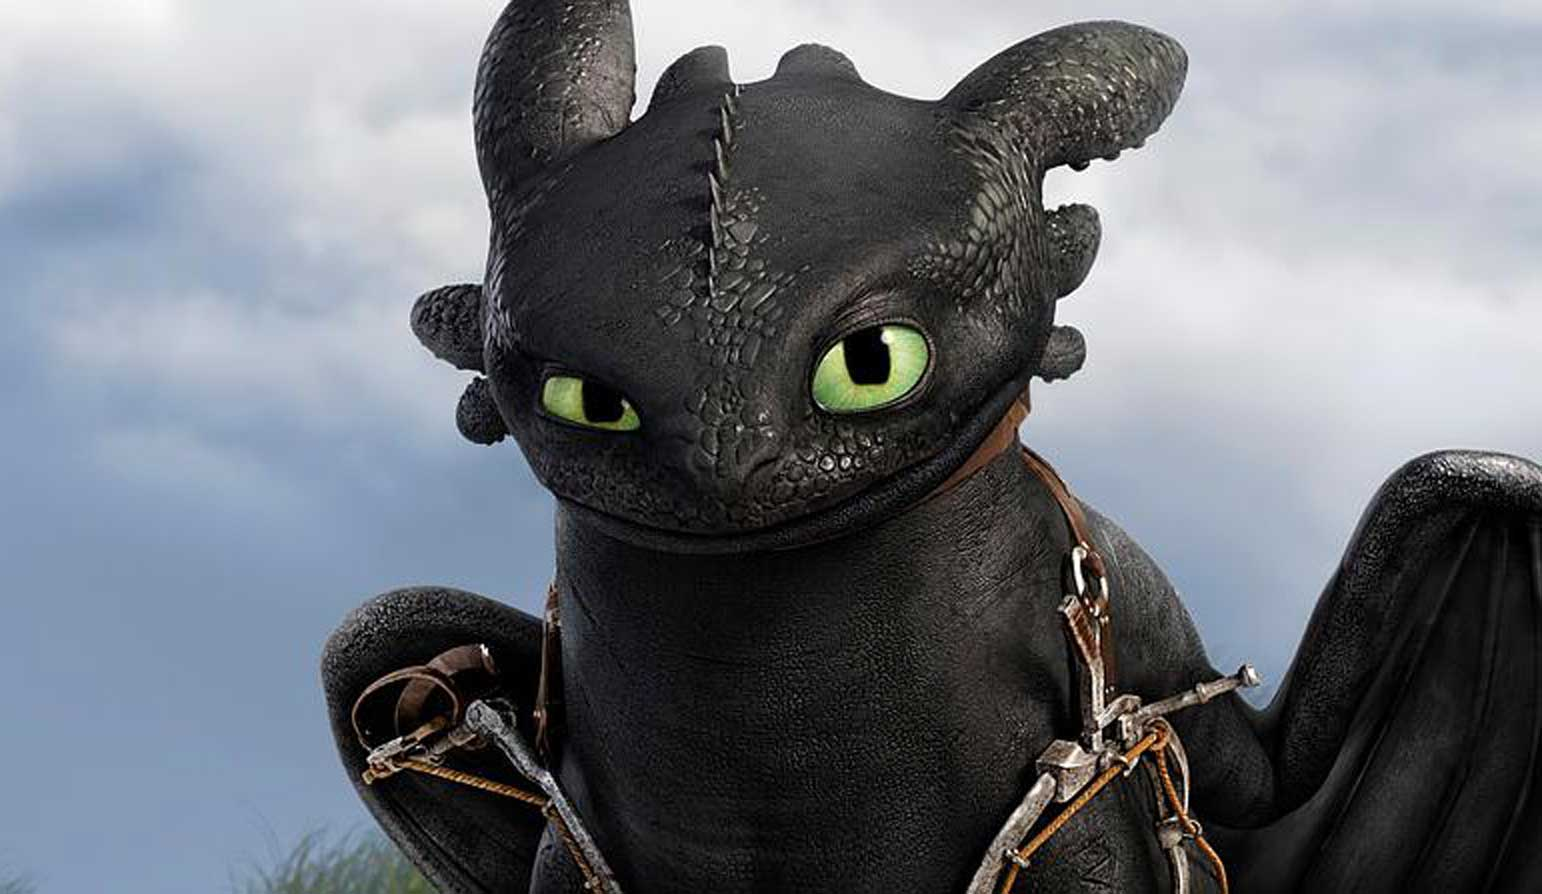 Have You Met These Dragons Who Are Not Toothless From 'How To Train Your Dragon'?